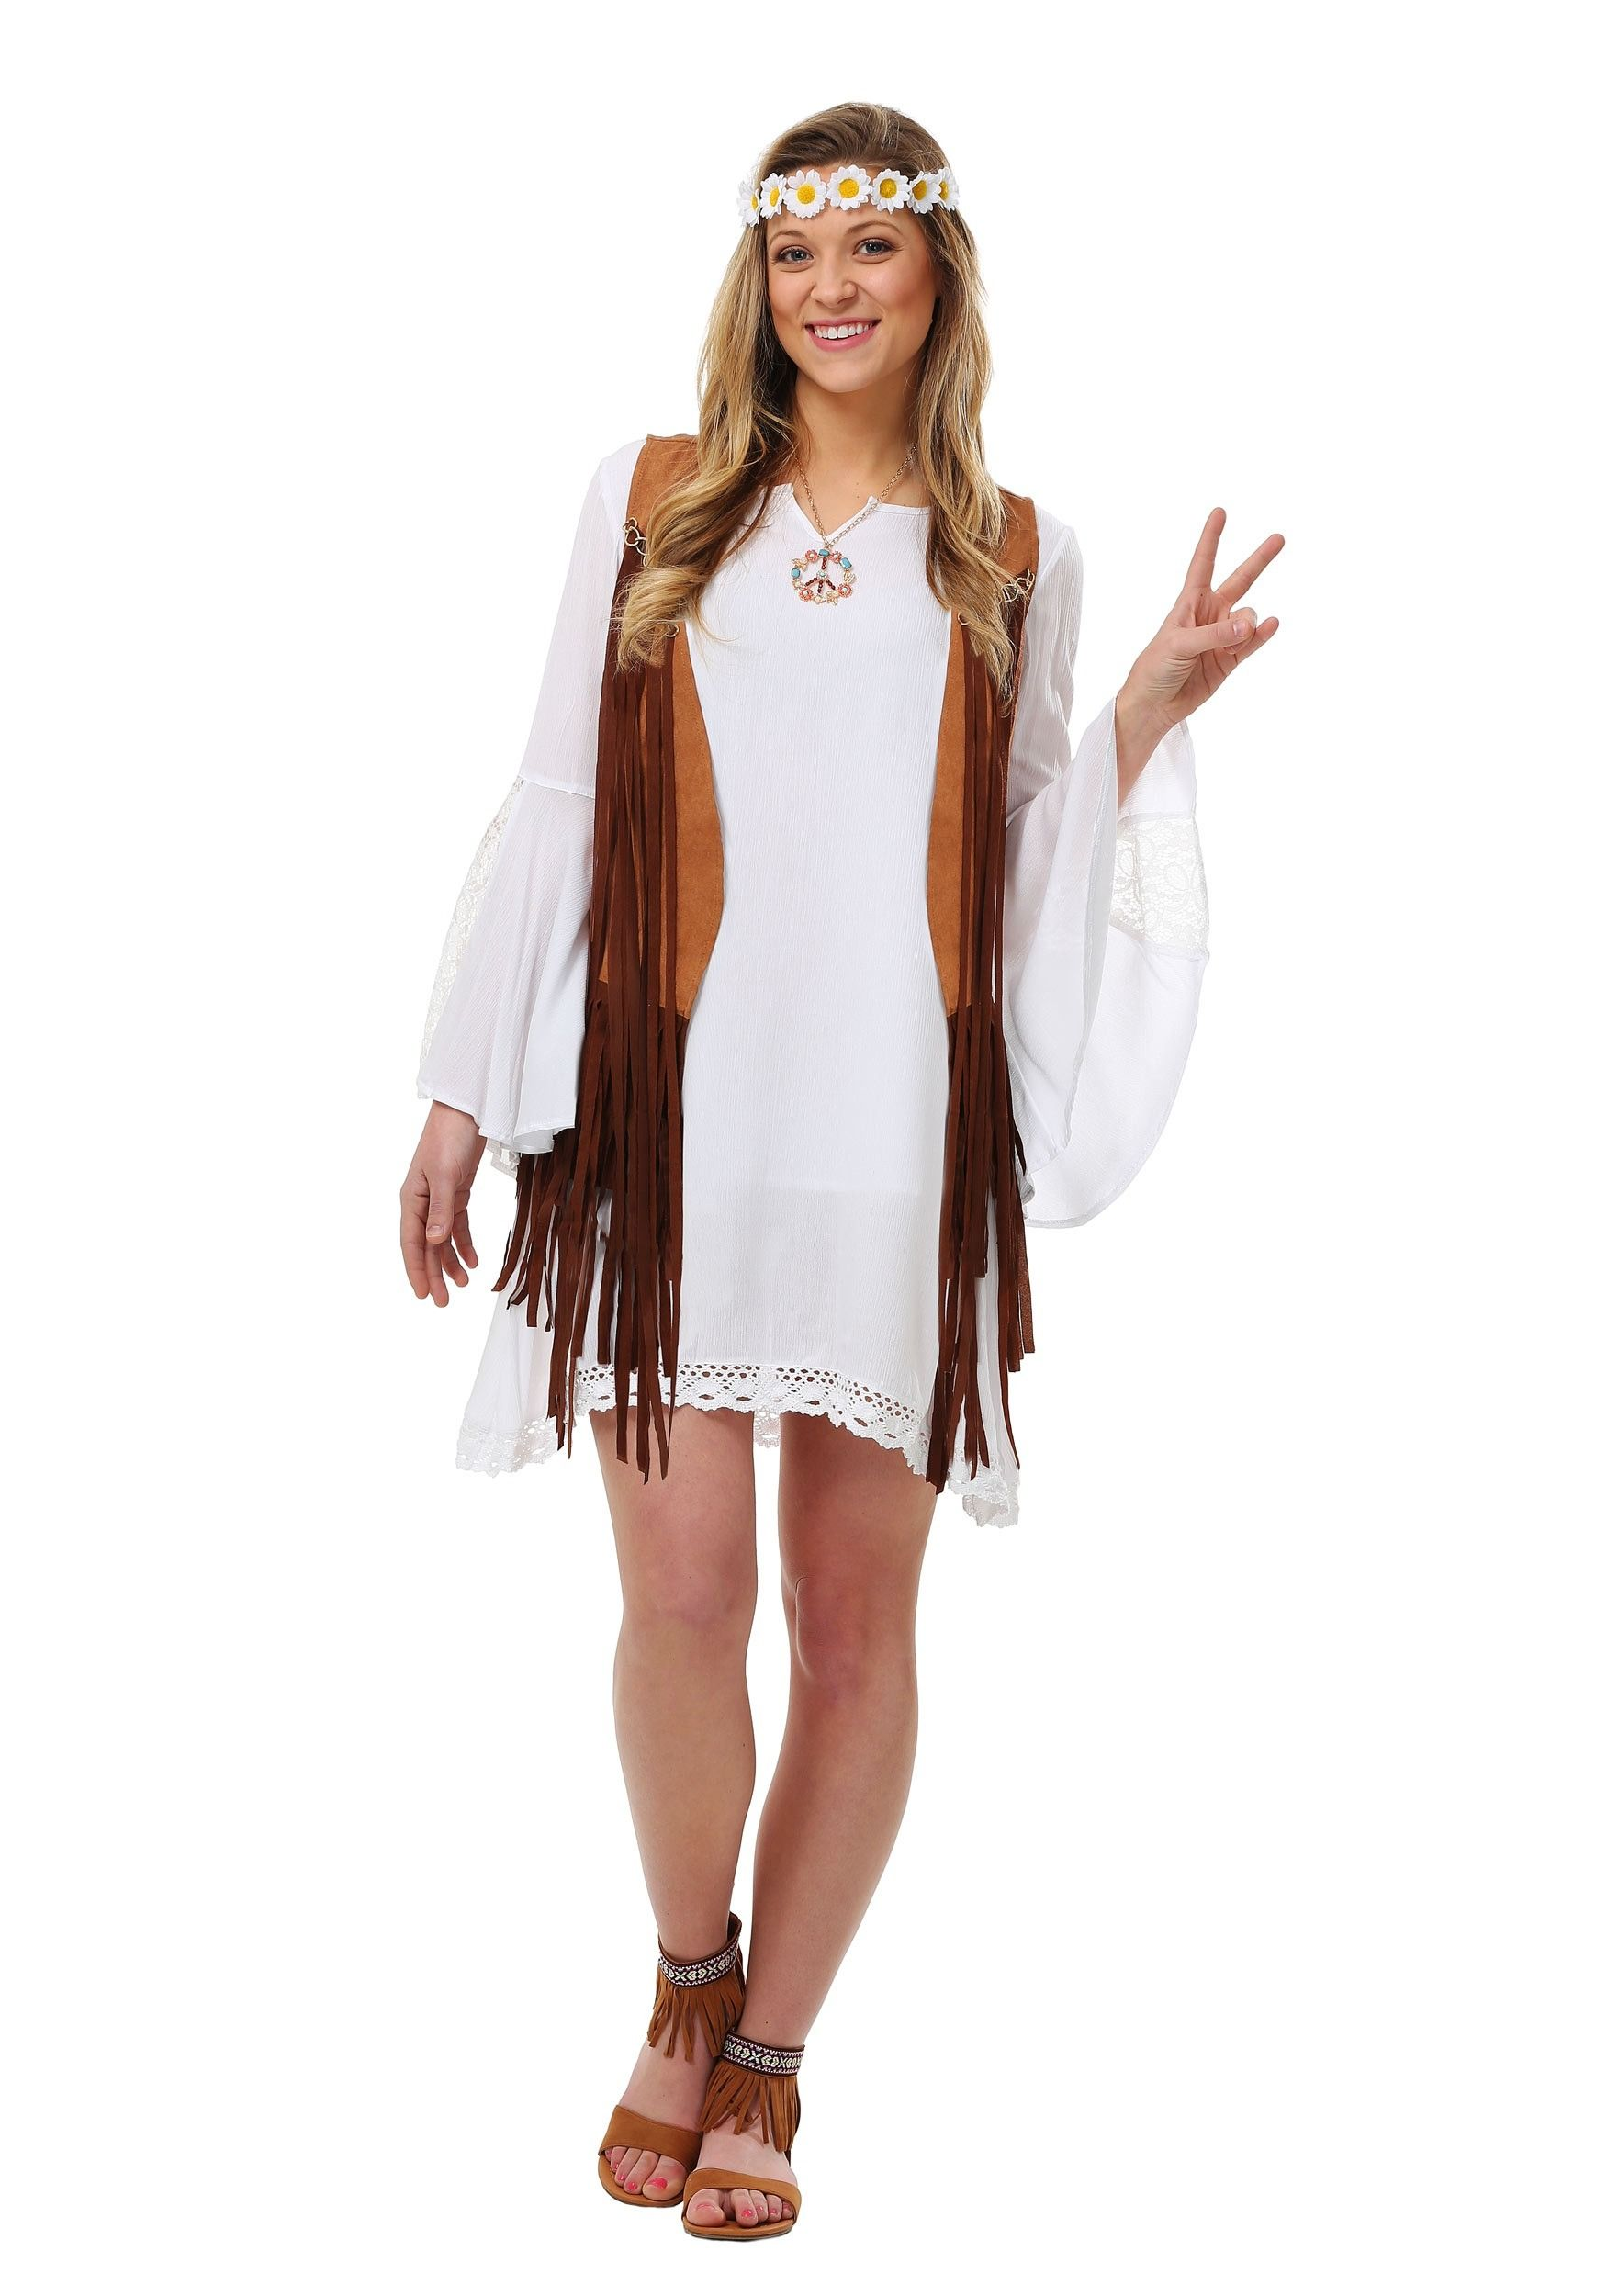 Homemade Hippie Costume Ideas. | Hippie Costumes | Pinterest ...